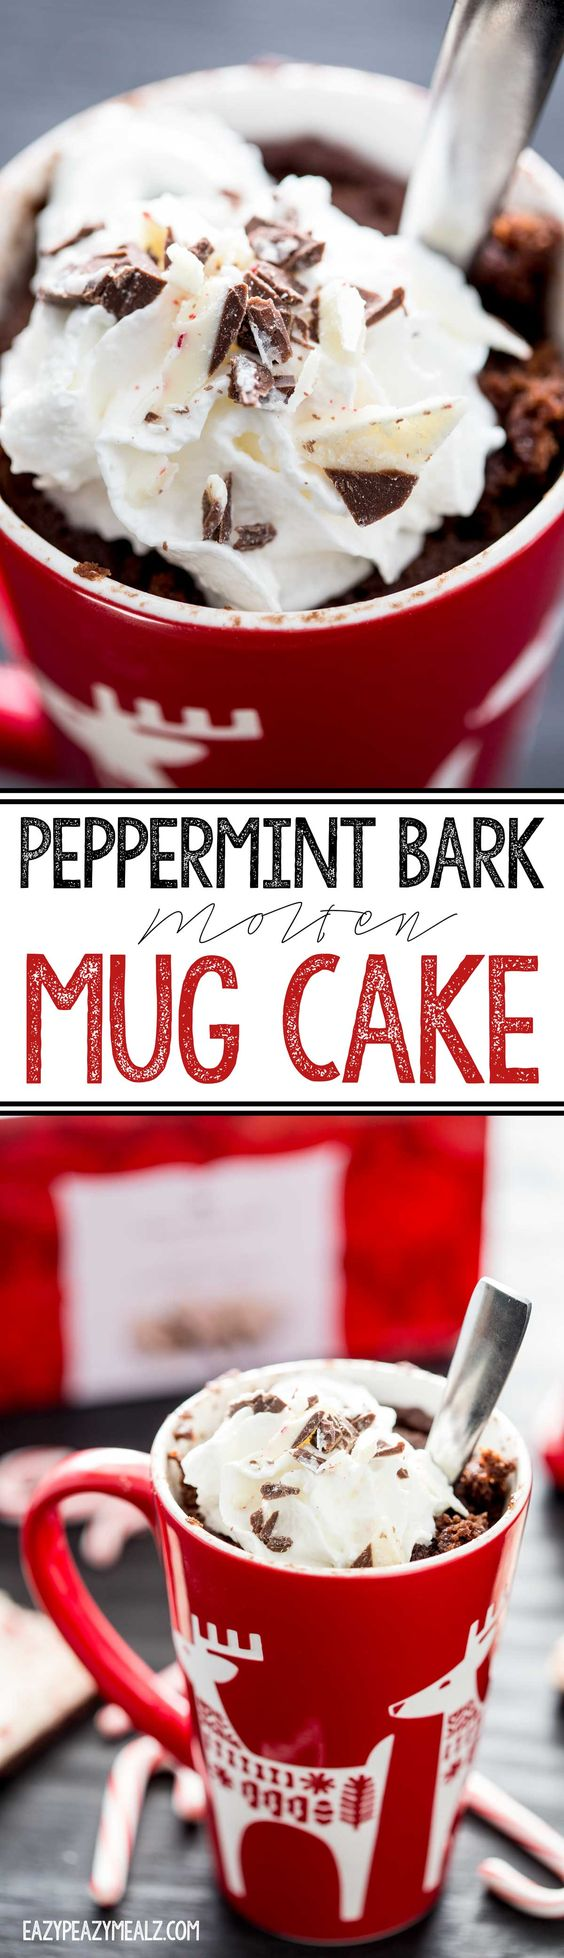 Chocolate peppermint bark, Peppermint bark and Mug cakes on Pinterest